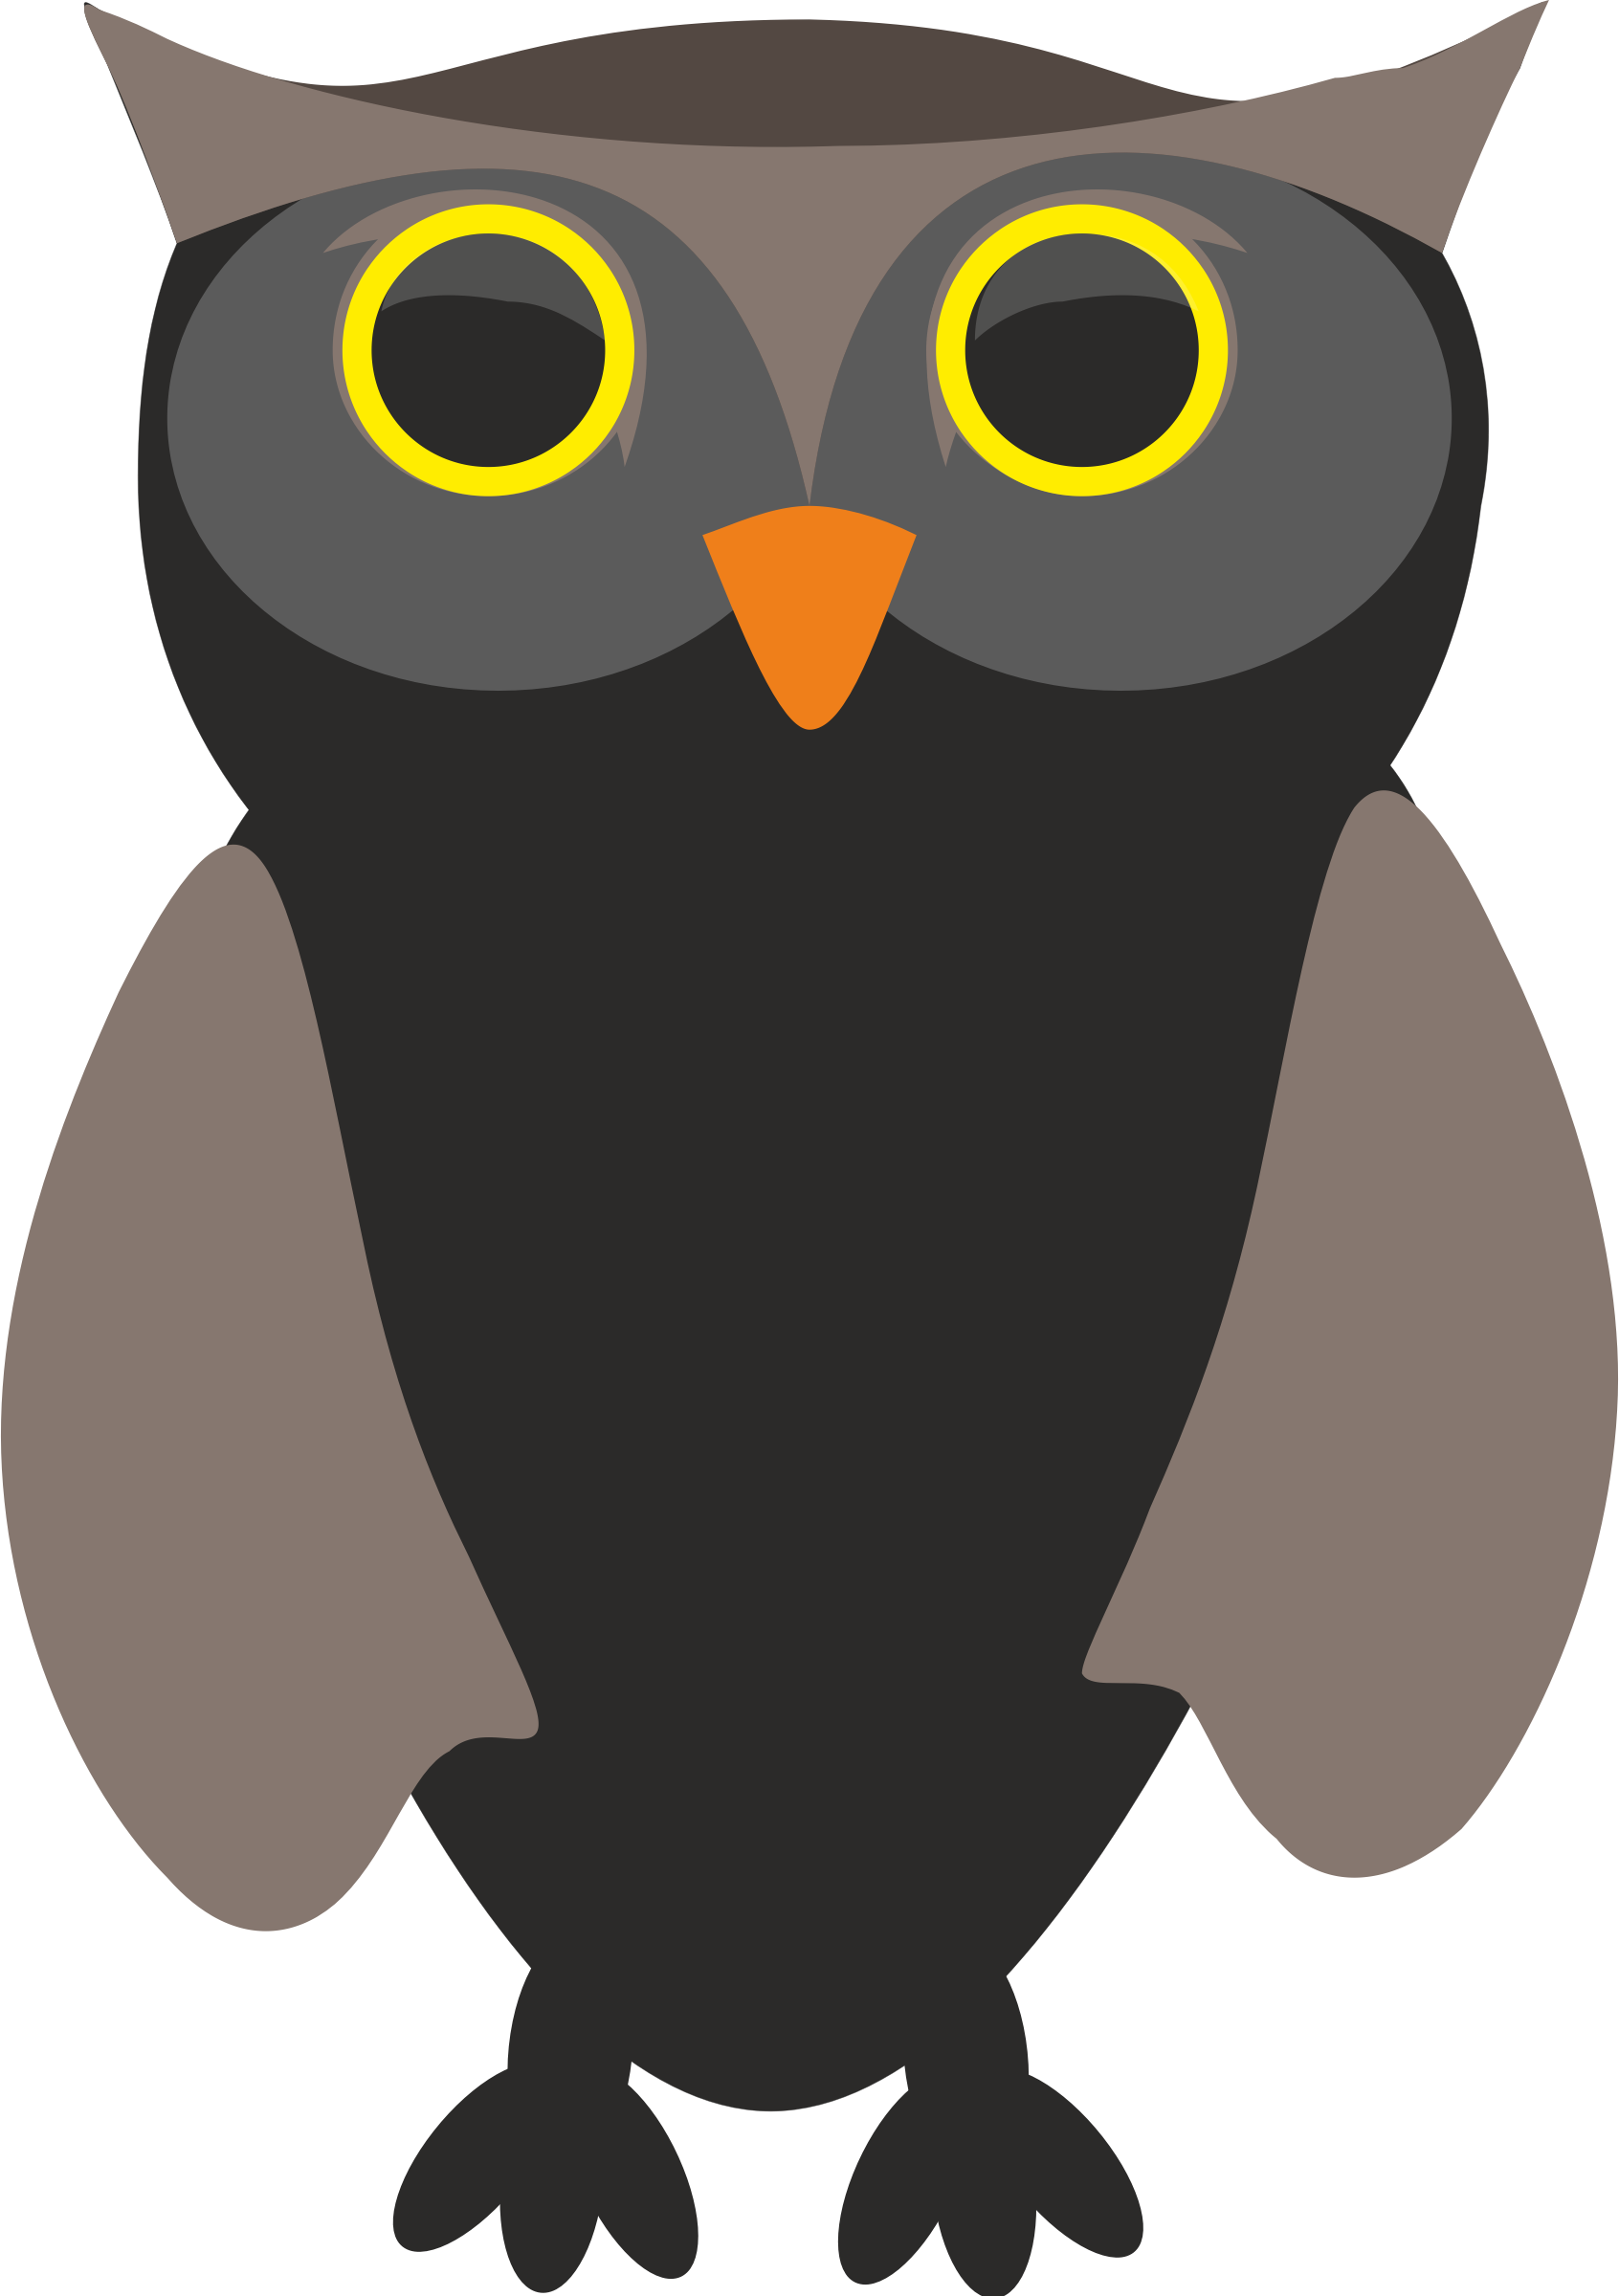 https://openclipart.org/image/2400px/svg_to_png/221266/Owl.png